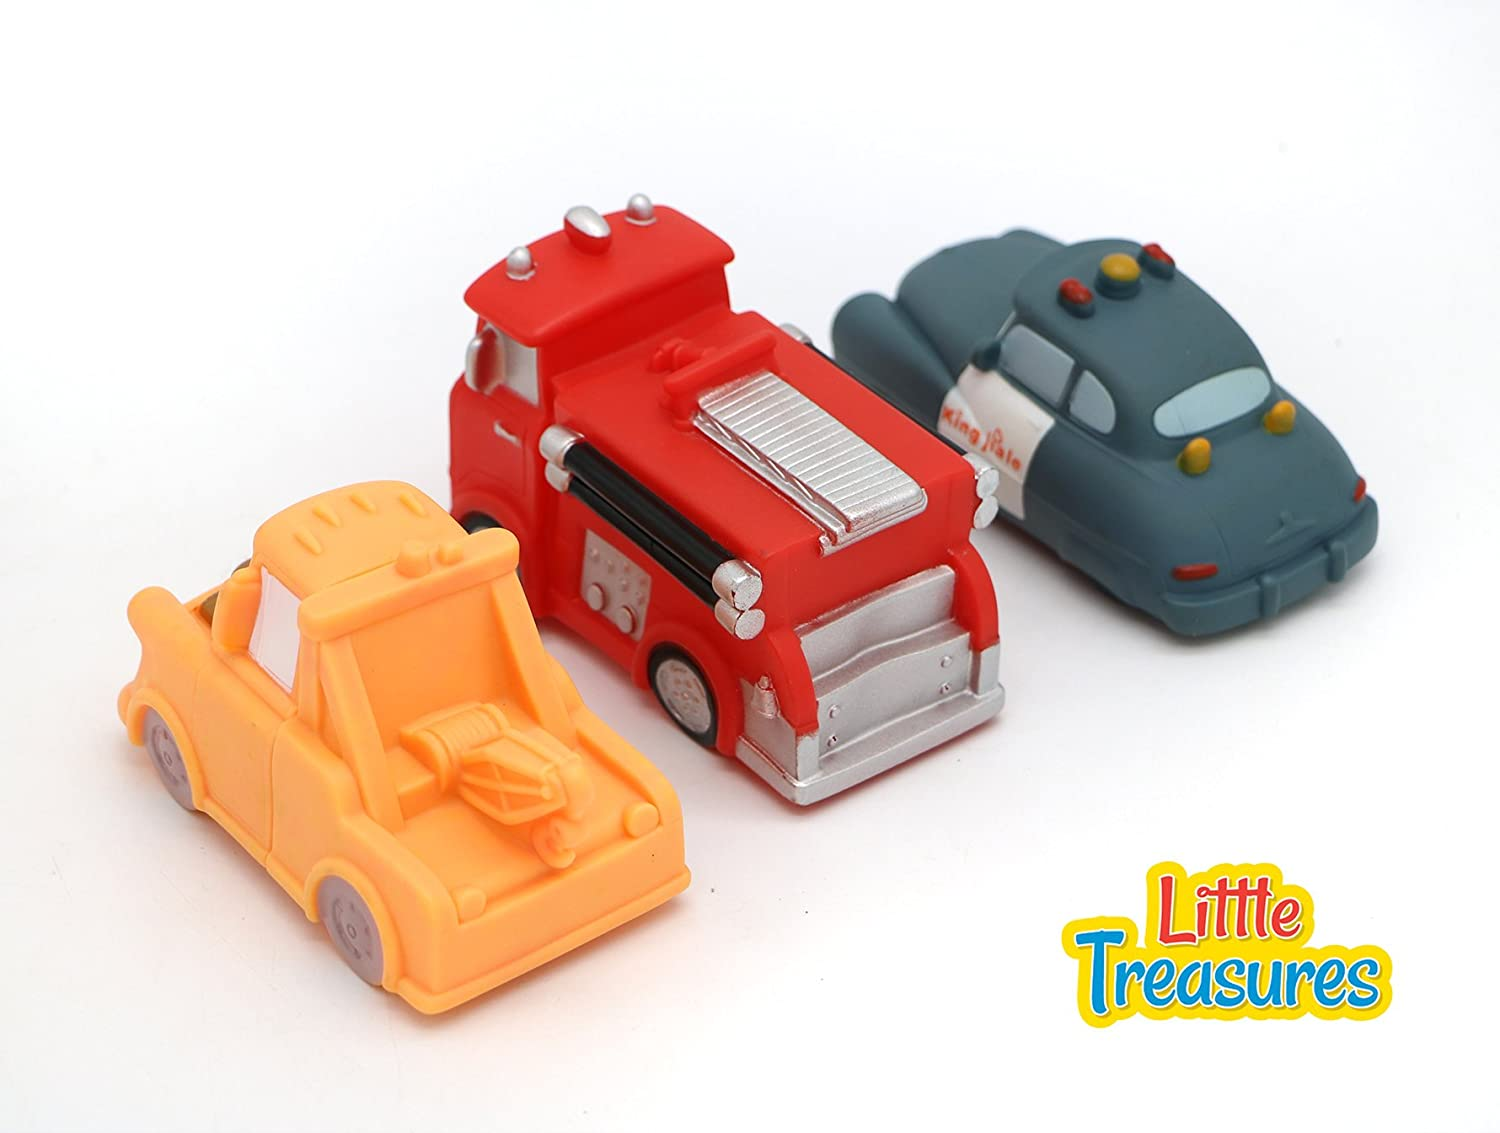 Months Toddlers Little Treasures Friendly Tub Toy Vehicles Bath Toys For Babies Of Age 19 Baby Safety Bath Toy Temperature Indicator When The Water Is Too HOT for Children